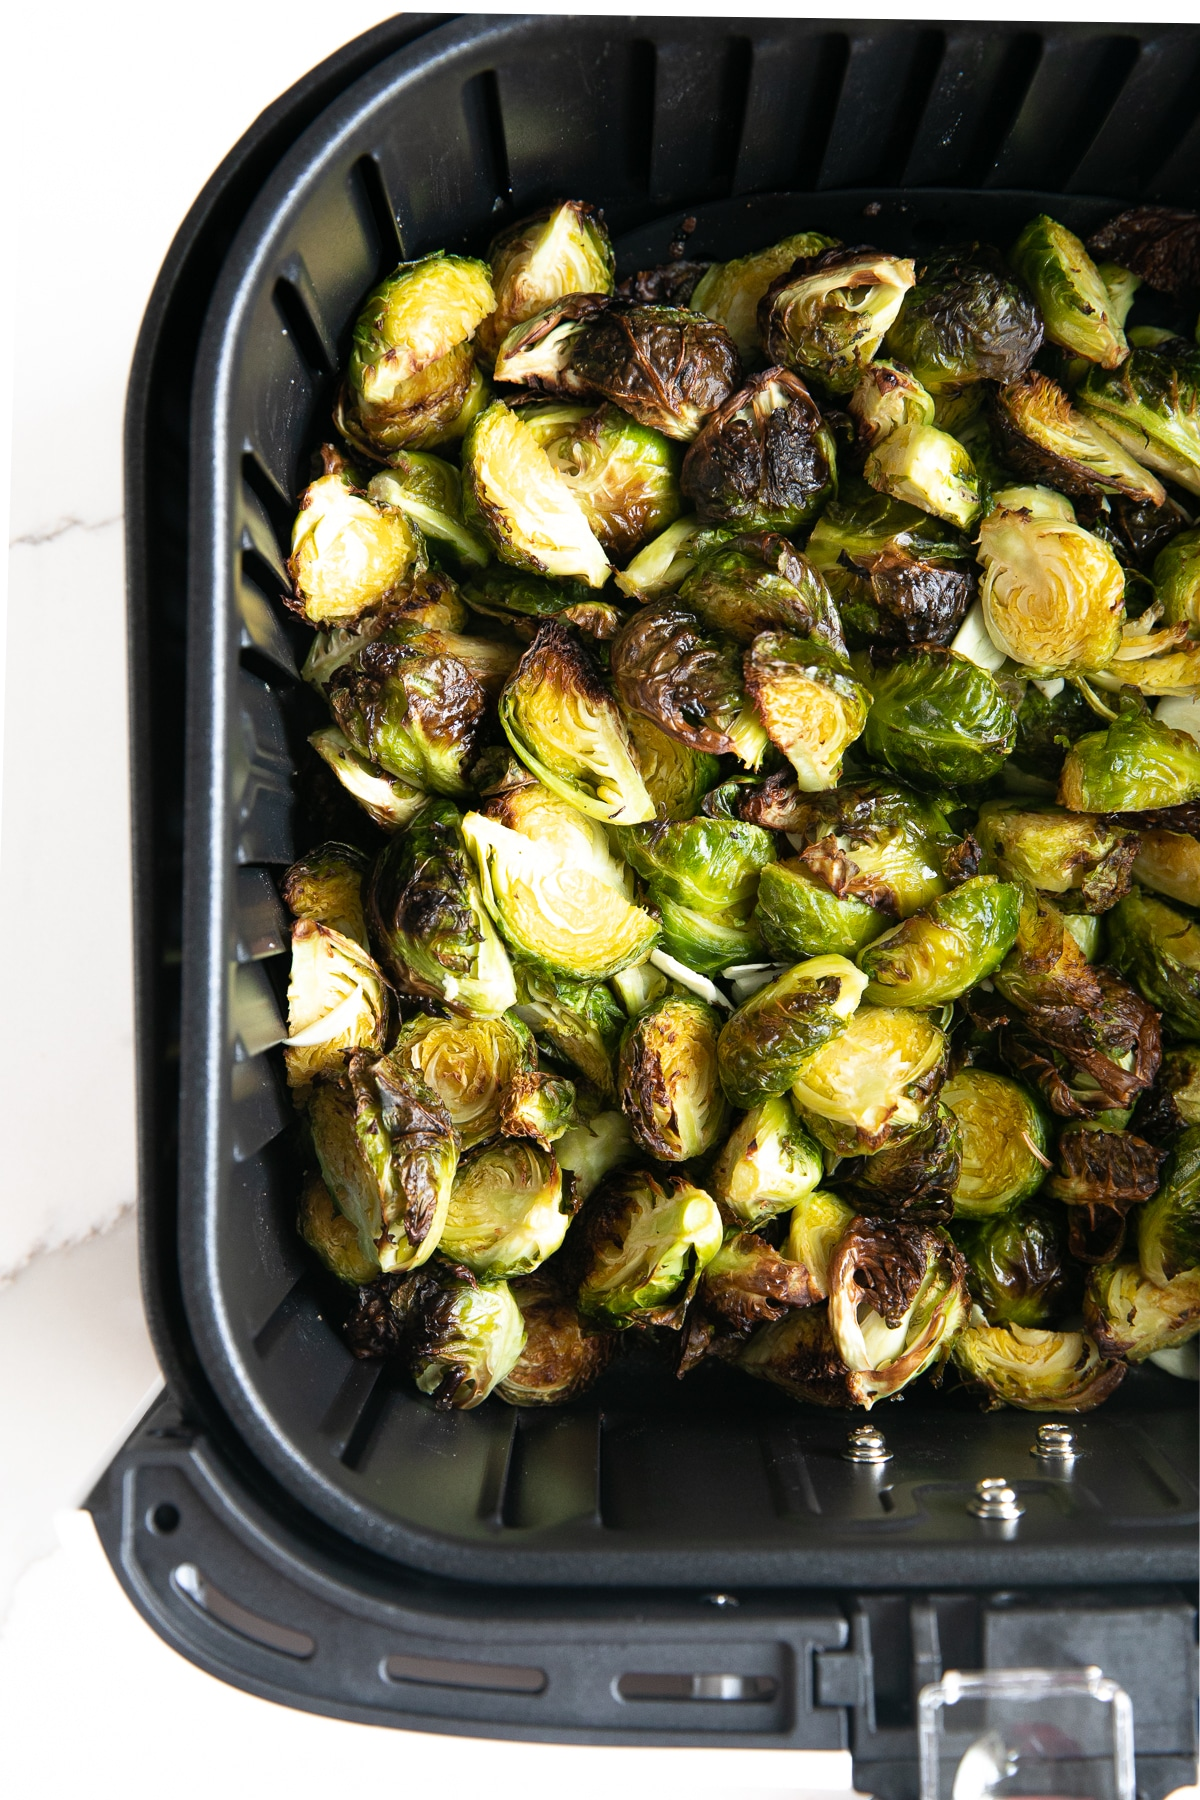 Image of fully cooked and crispy Brussels sprouts resting in the air fryer basket.